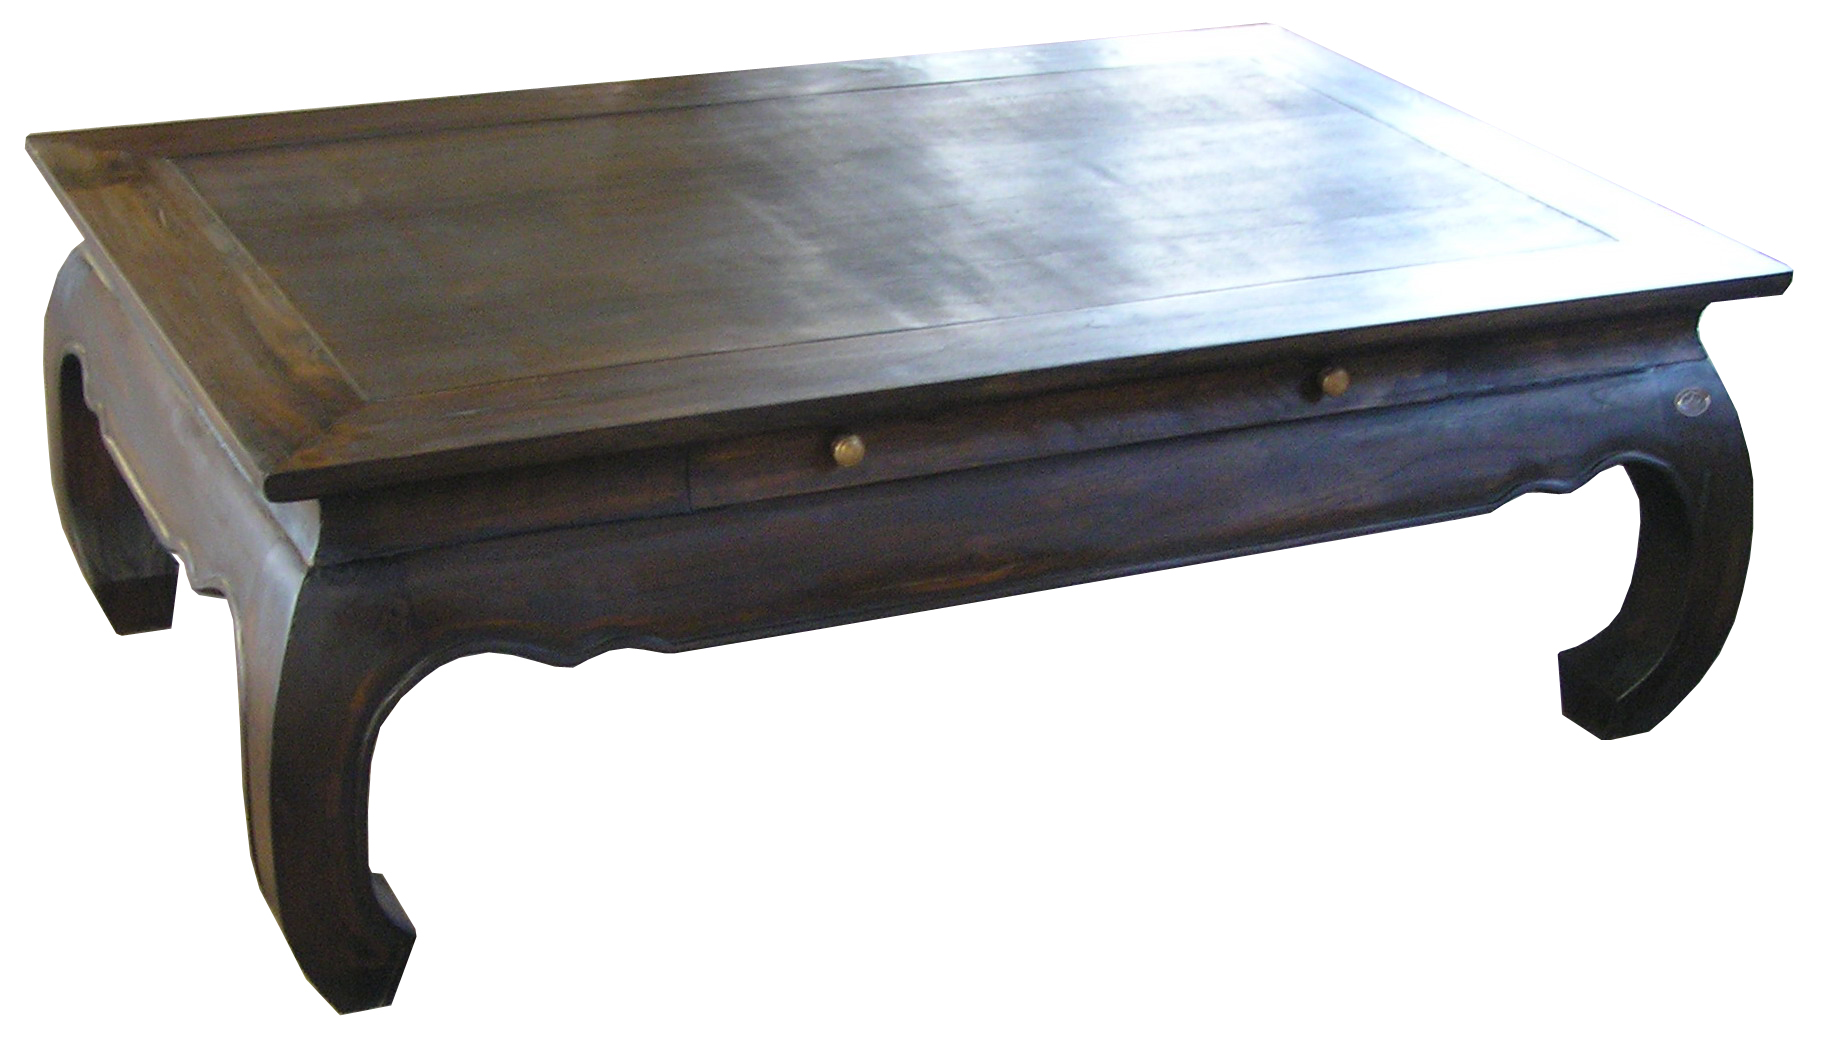 Opium-table-wooden-top